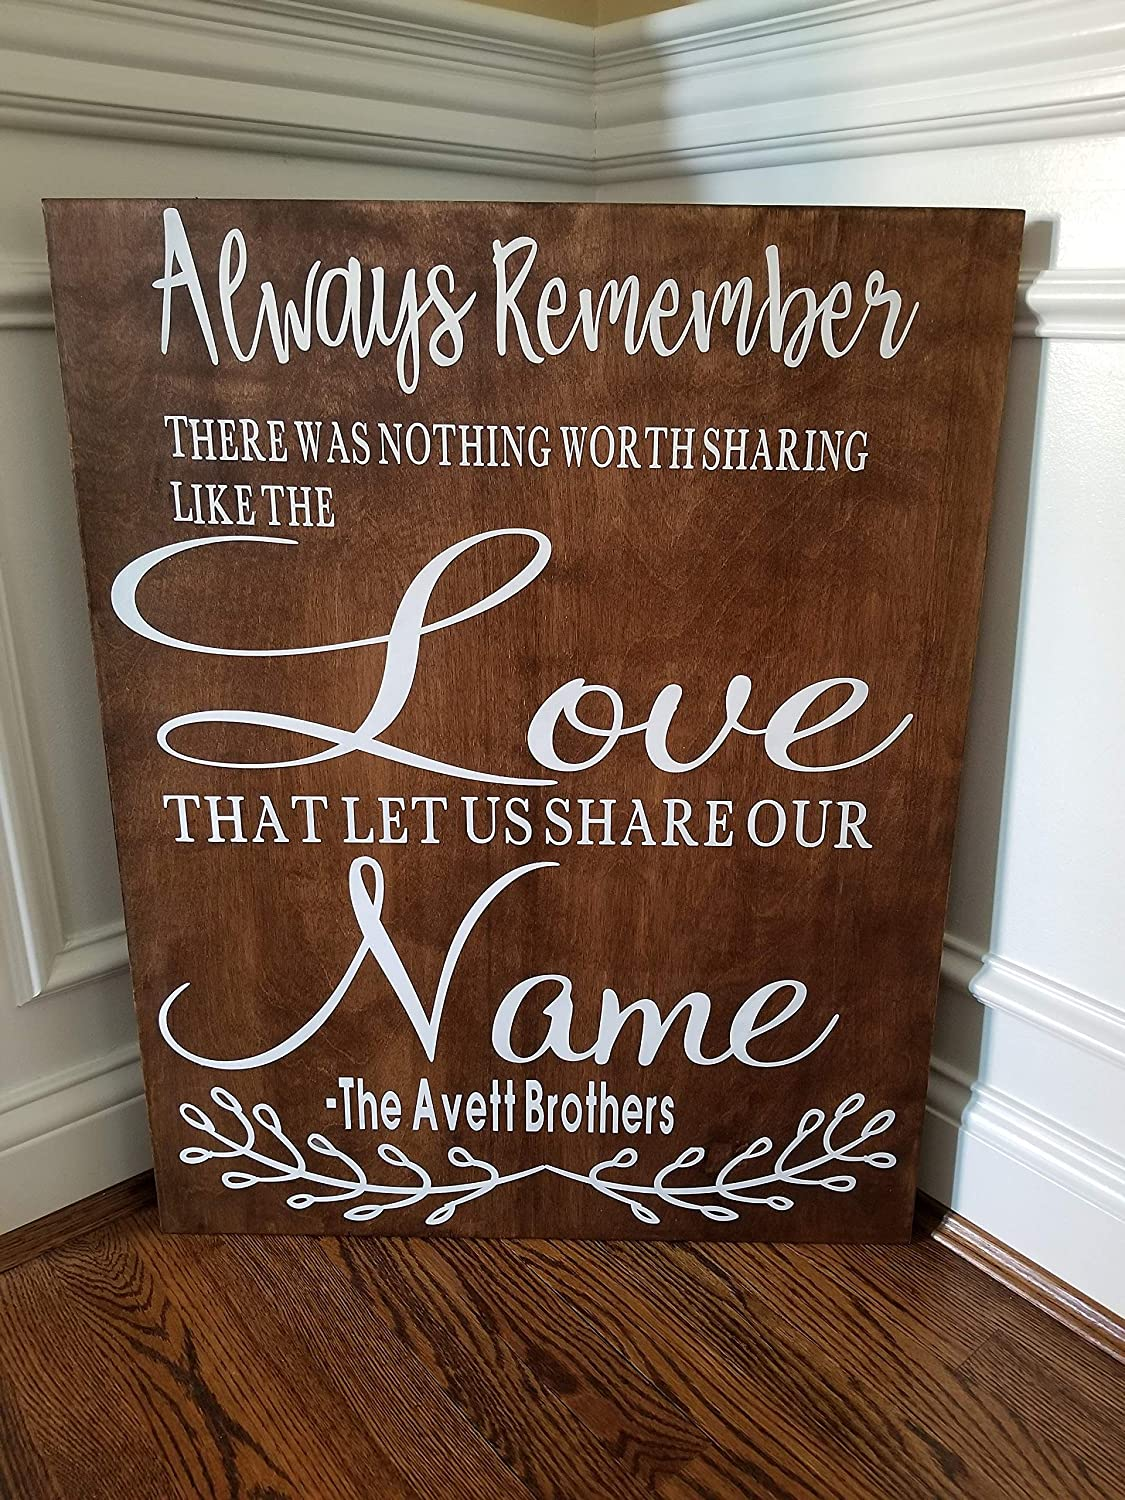 Always Remember There is Nothing Worth Sharing Like The Love That Let Us Share Our Name Avett Brothers Song Lyric Sign Funny Wood Sign for Home Living Room Decor